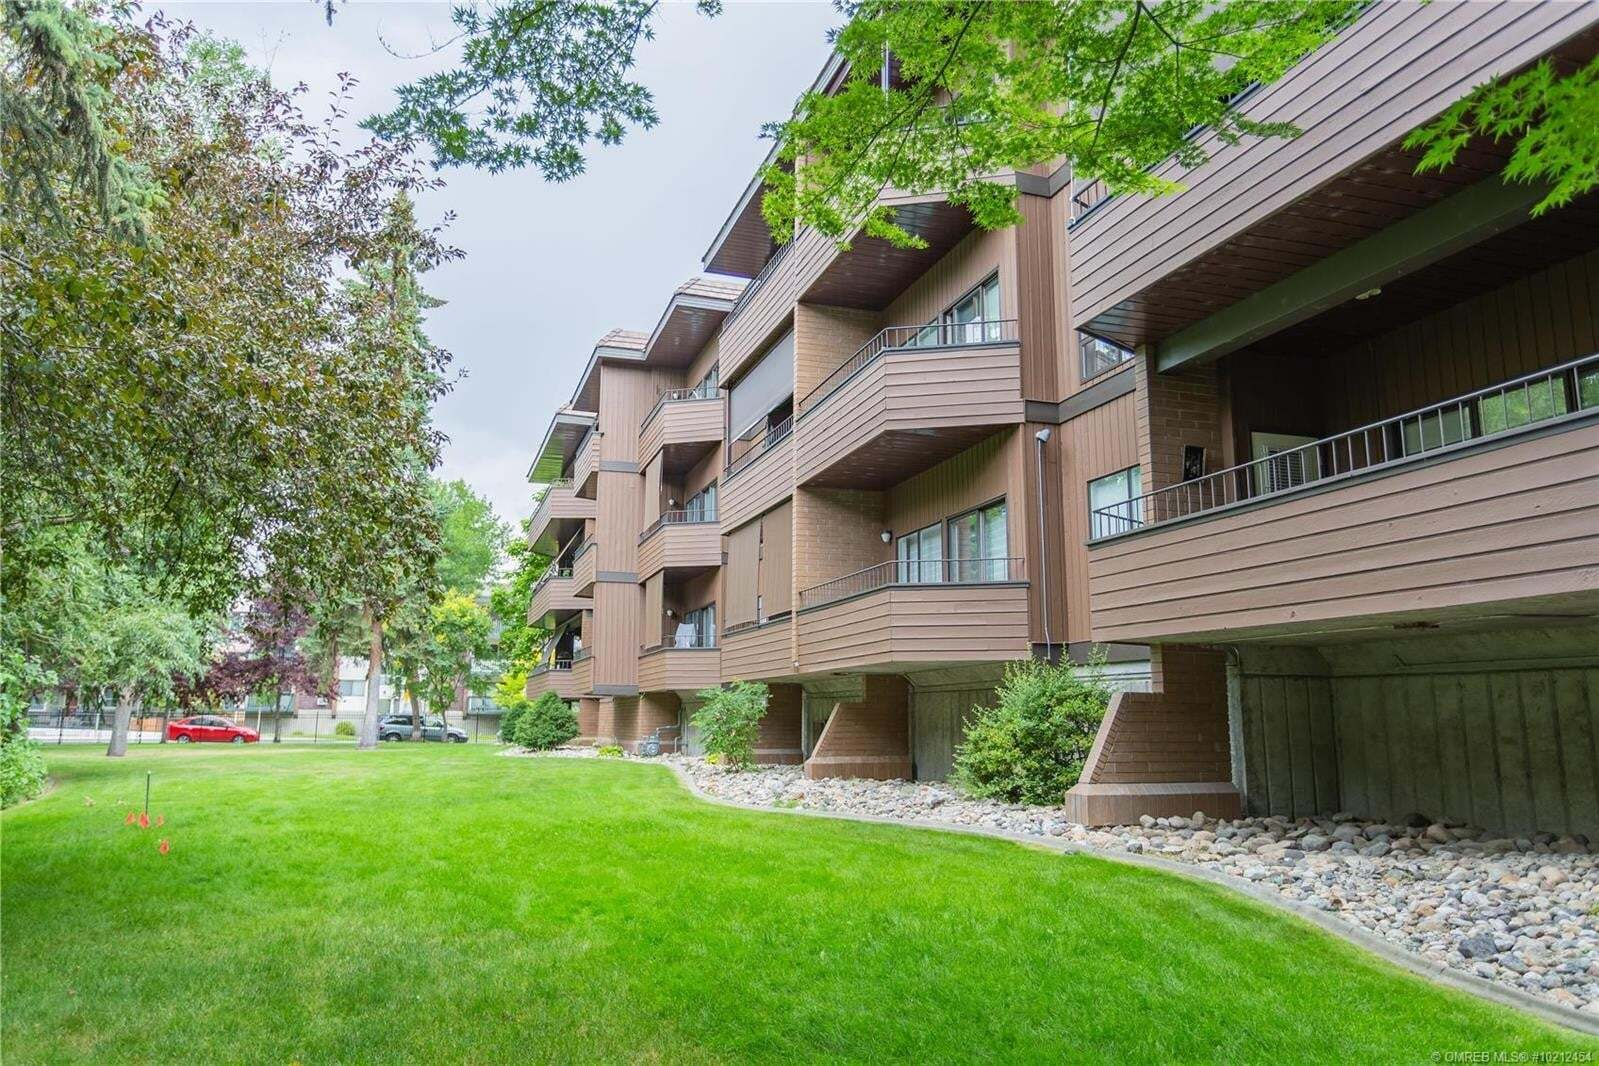 Condo for sale at 539 Sutherland Ave Kelowna British Columbia - MLS: 10212454